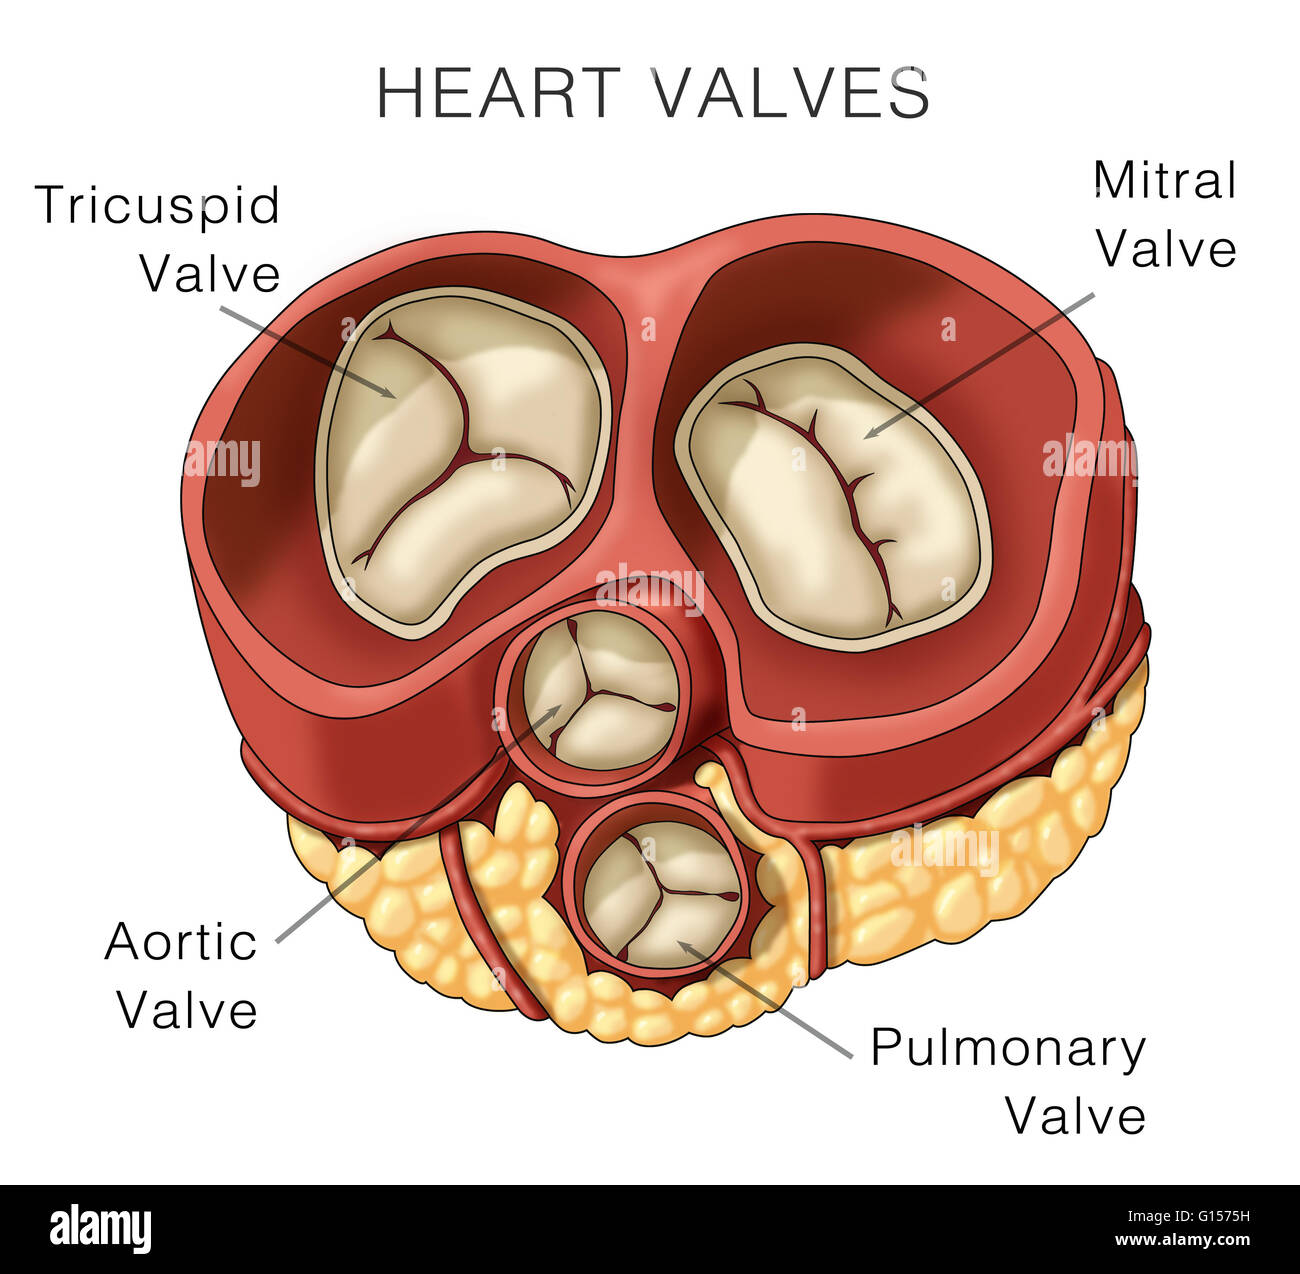 Mitral Valve Stock Photos & Mitral Valve Stock Images - Alamy